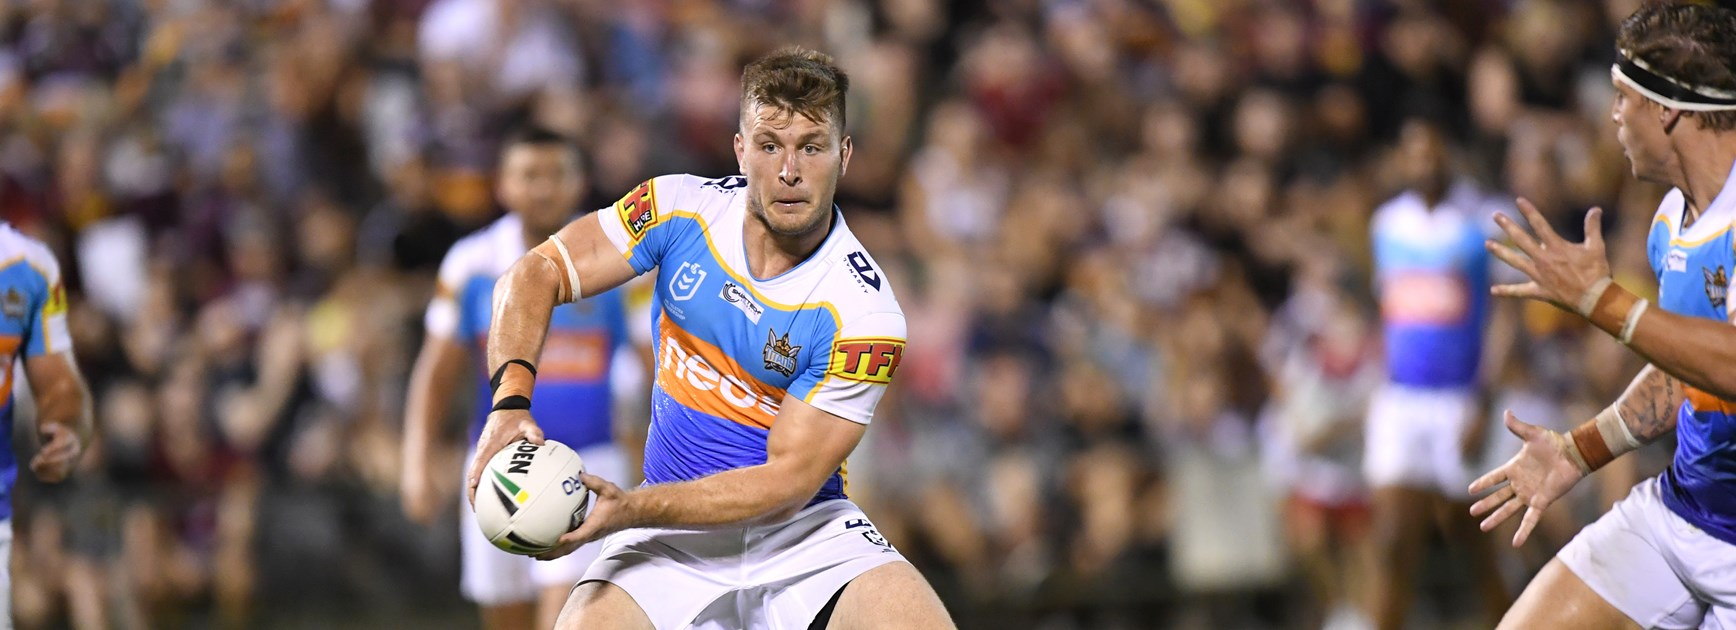 The Opposition: Gold Coast Titans